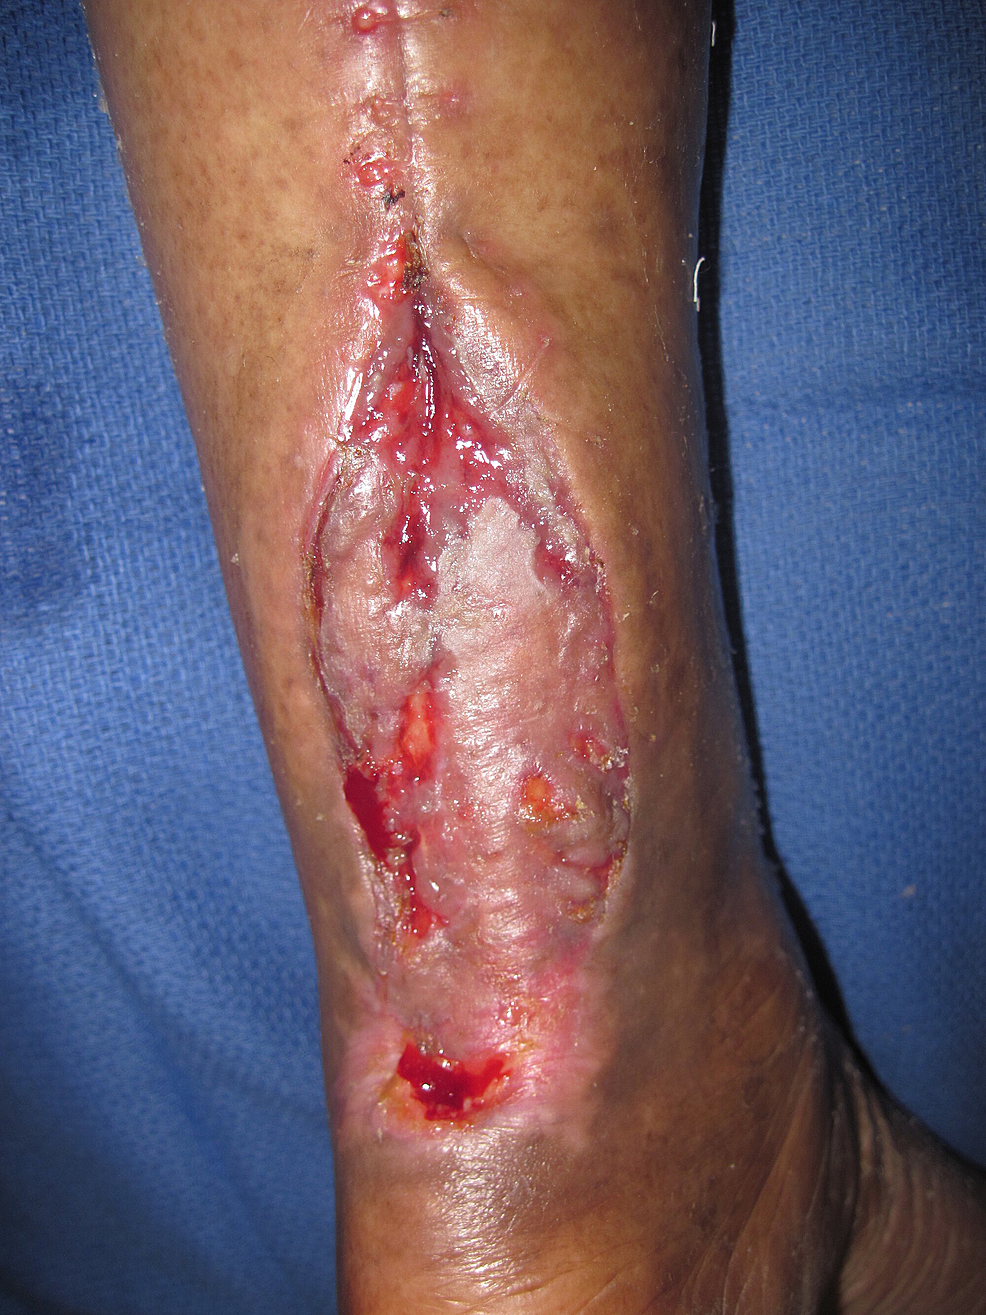 Treated-with-NPWTi-d-and-skin-graft.-Note-a-good-skin-graft-has-taken-over-much-of-the-tendon.